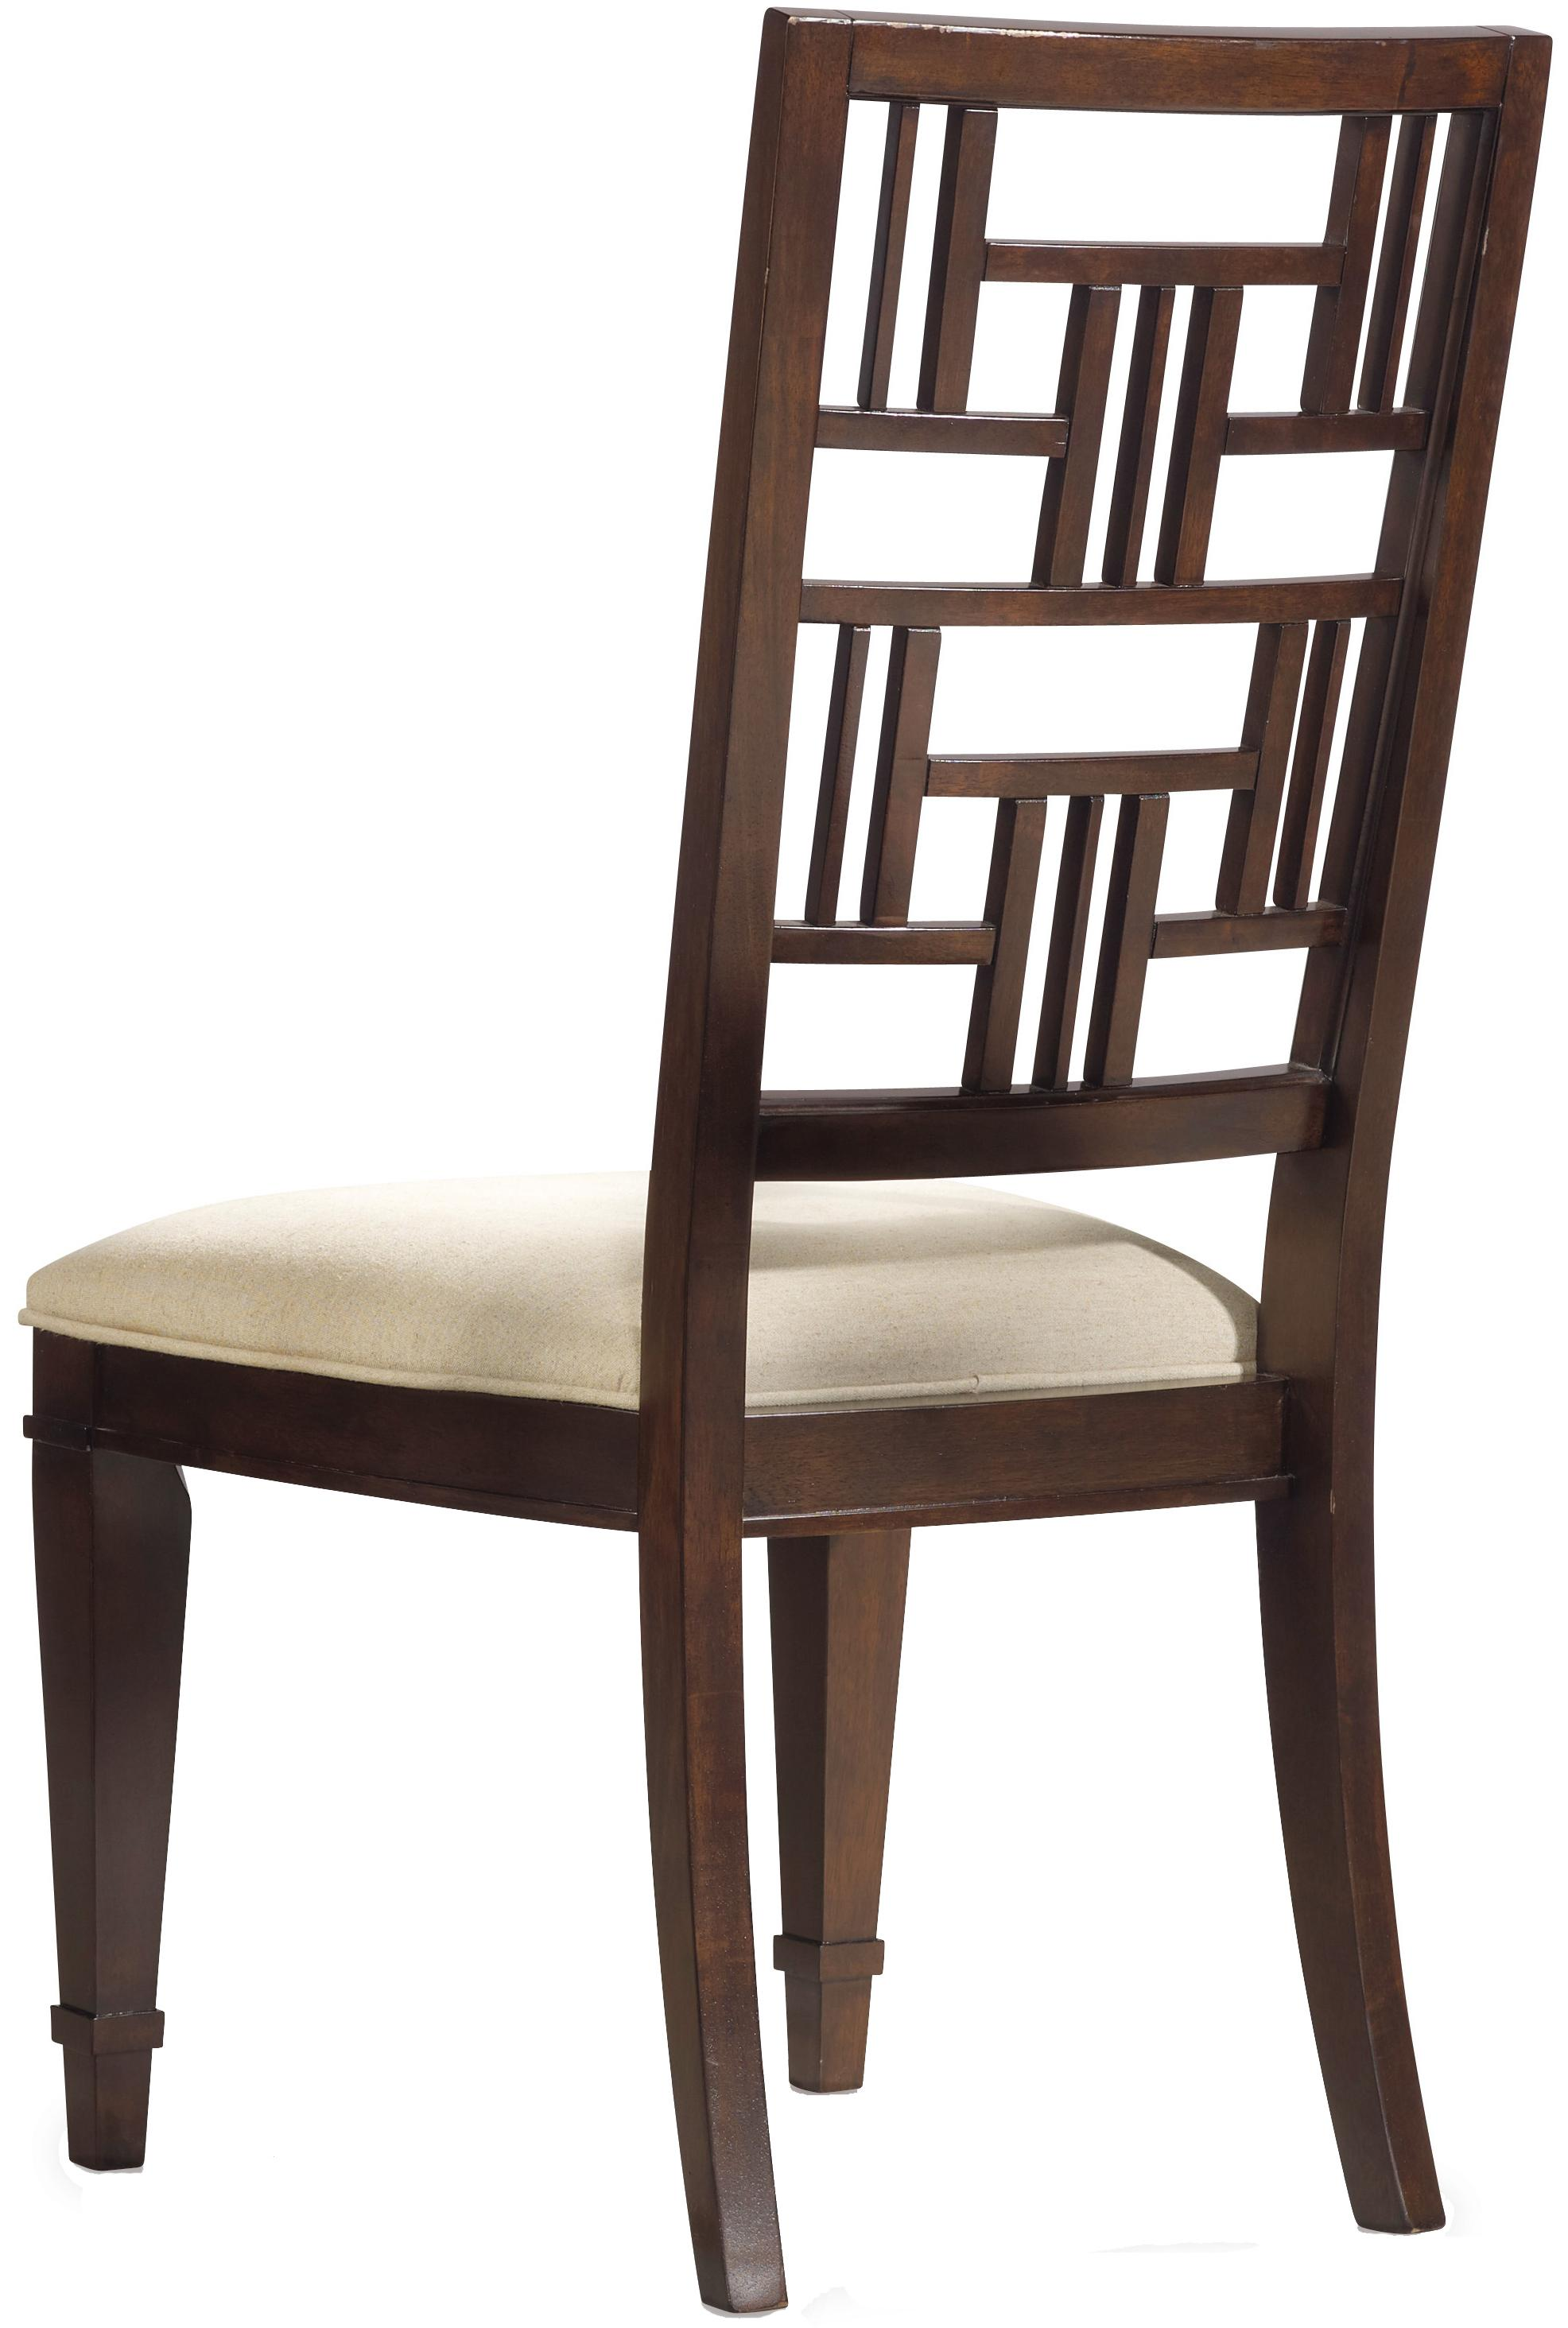 Hooker Furniture Ludlow Fretback Side Chair - Item Number: 1030-76410